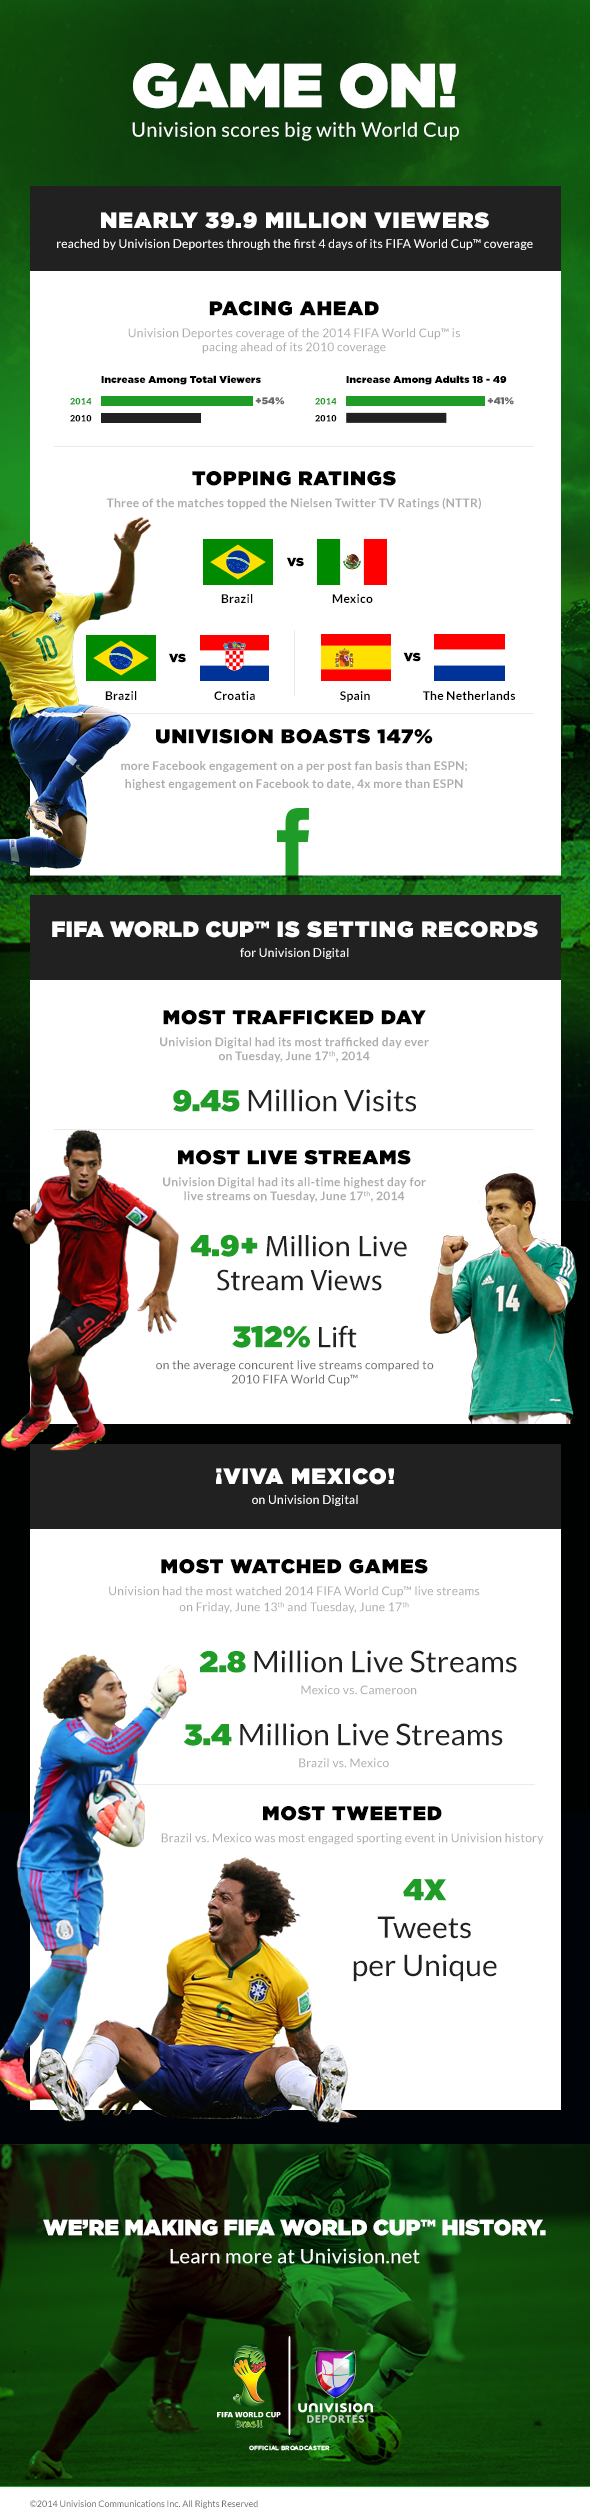 univision infographic World Cup Coverage Hitting Record Numbers In U.S. [INFOGRAPHIC]